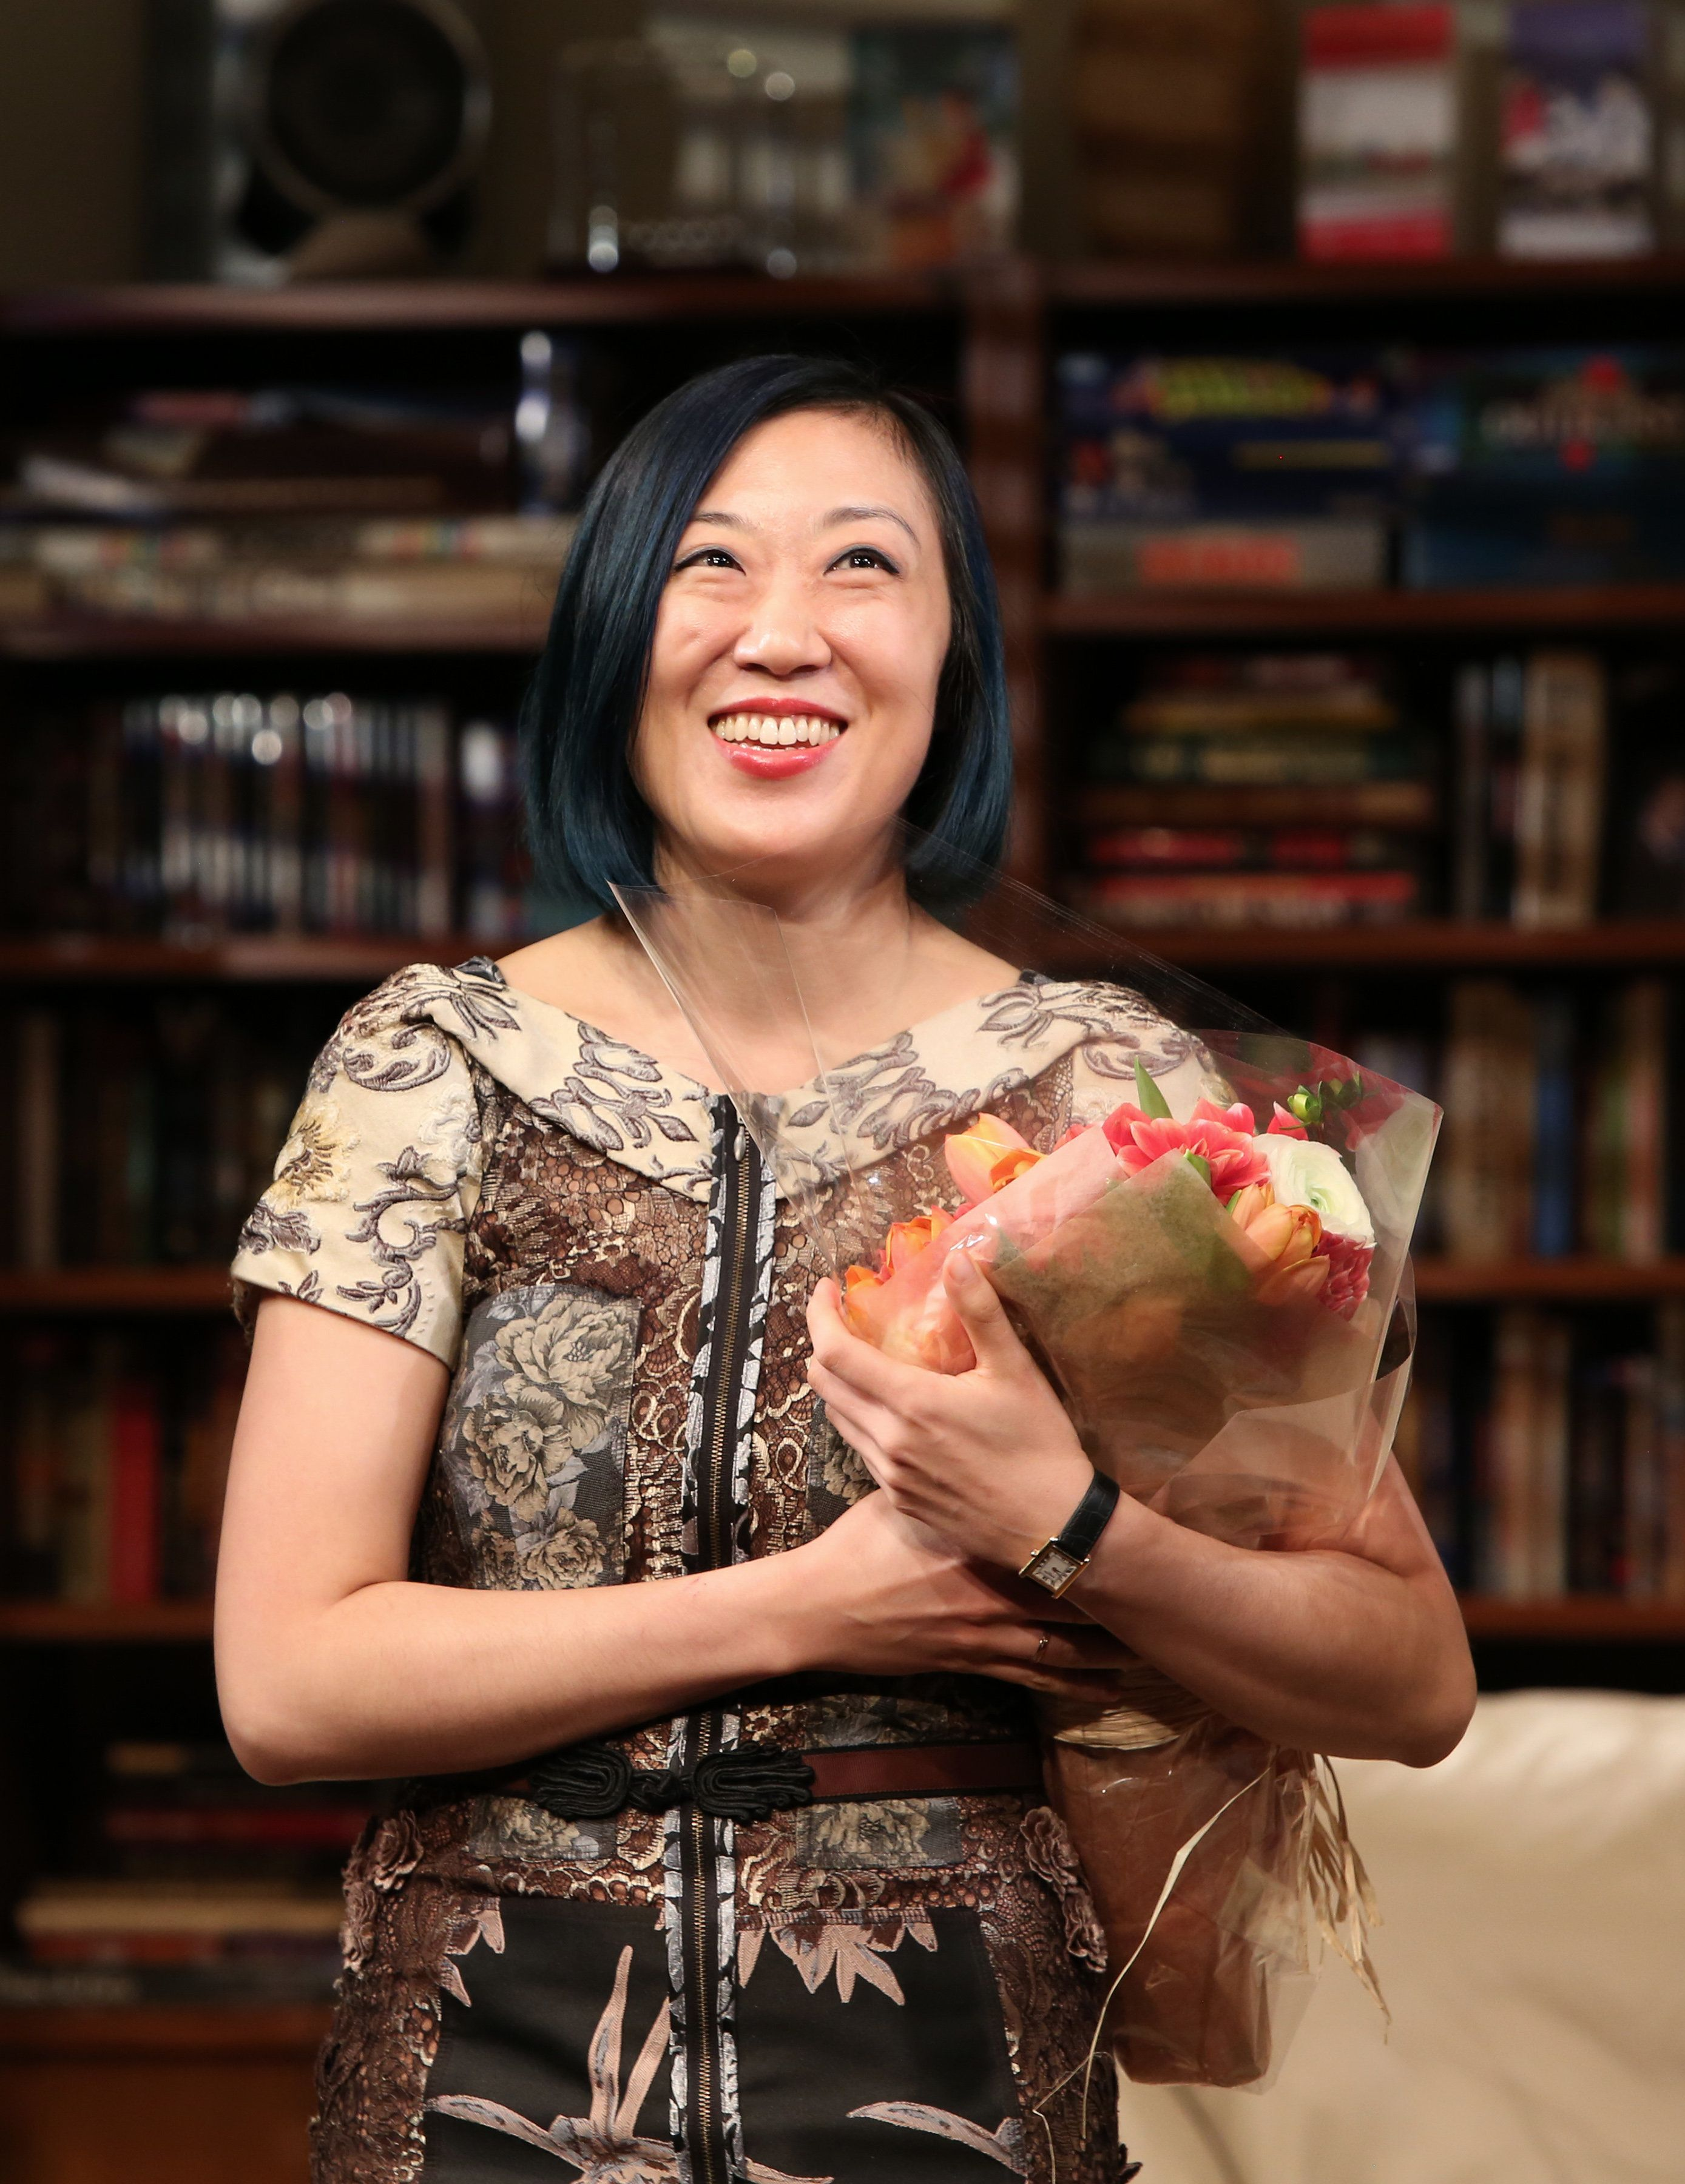 """Straight White Men"" playwright Young Jean Lee said she always aims to ""go out of my comfort zone"" through her work."